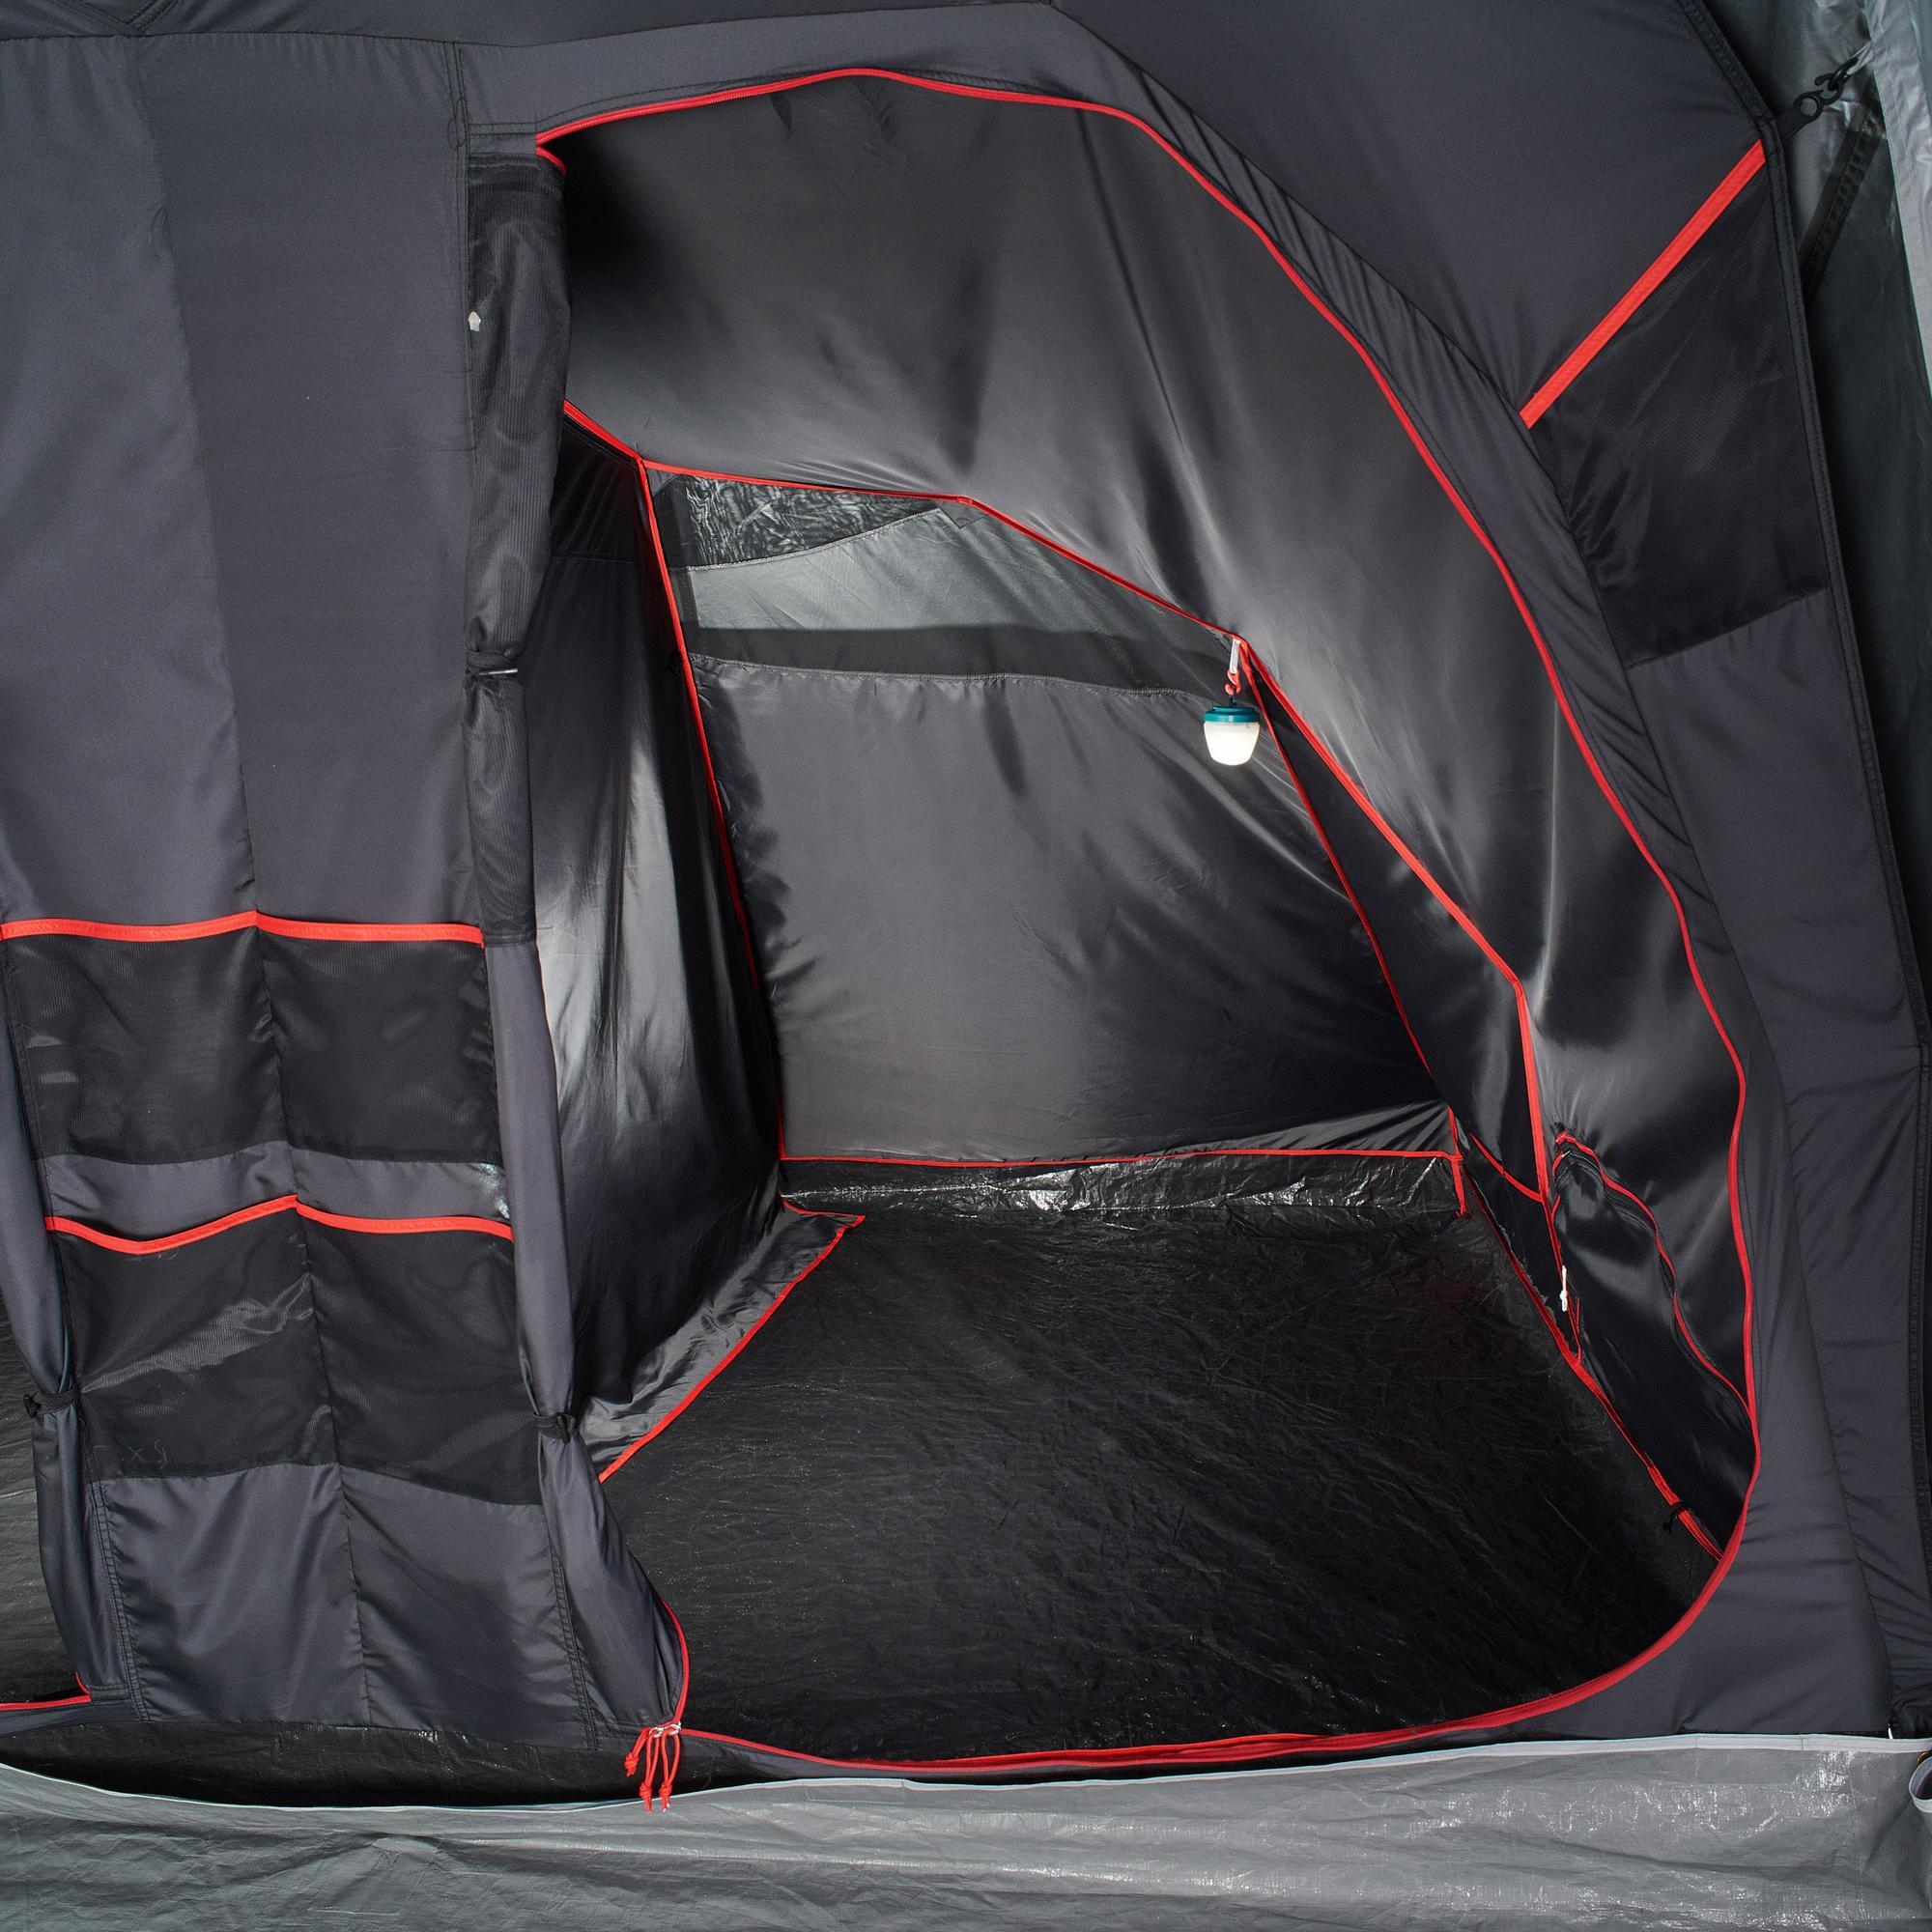 Quechua Slaapcompartiment voor Quechua-tent Air Seconds Family 8.4 XL Fresh & Black